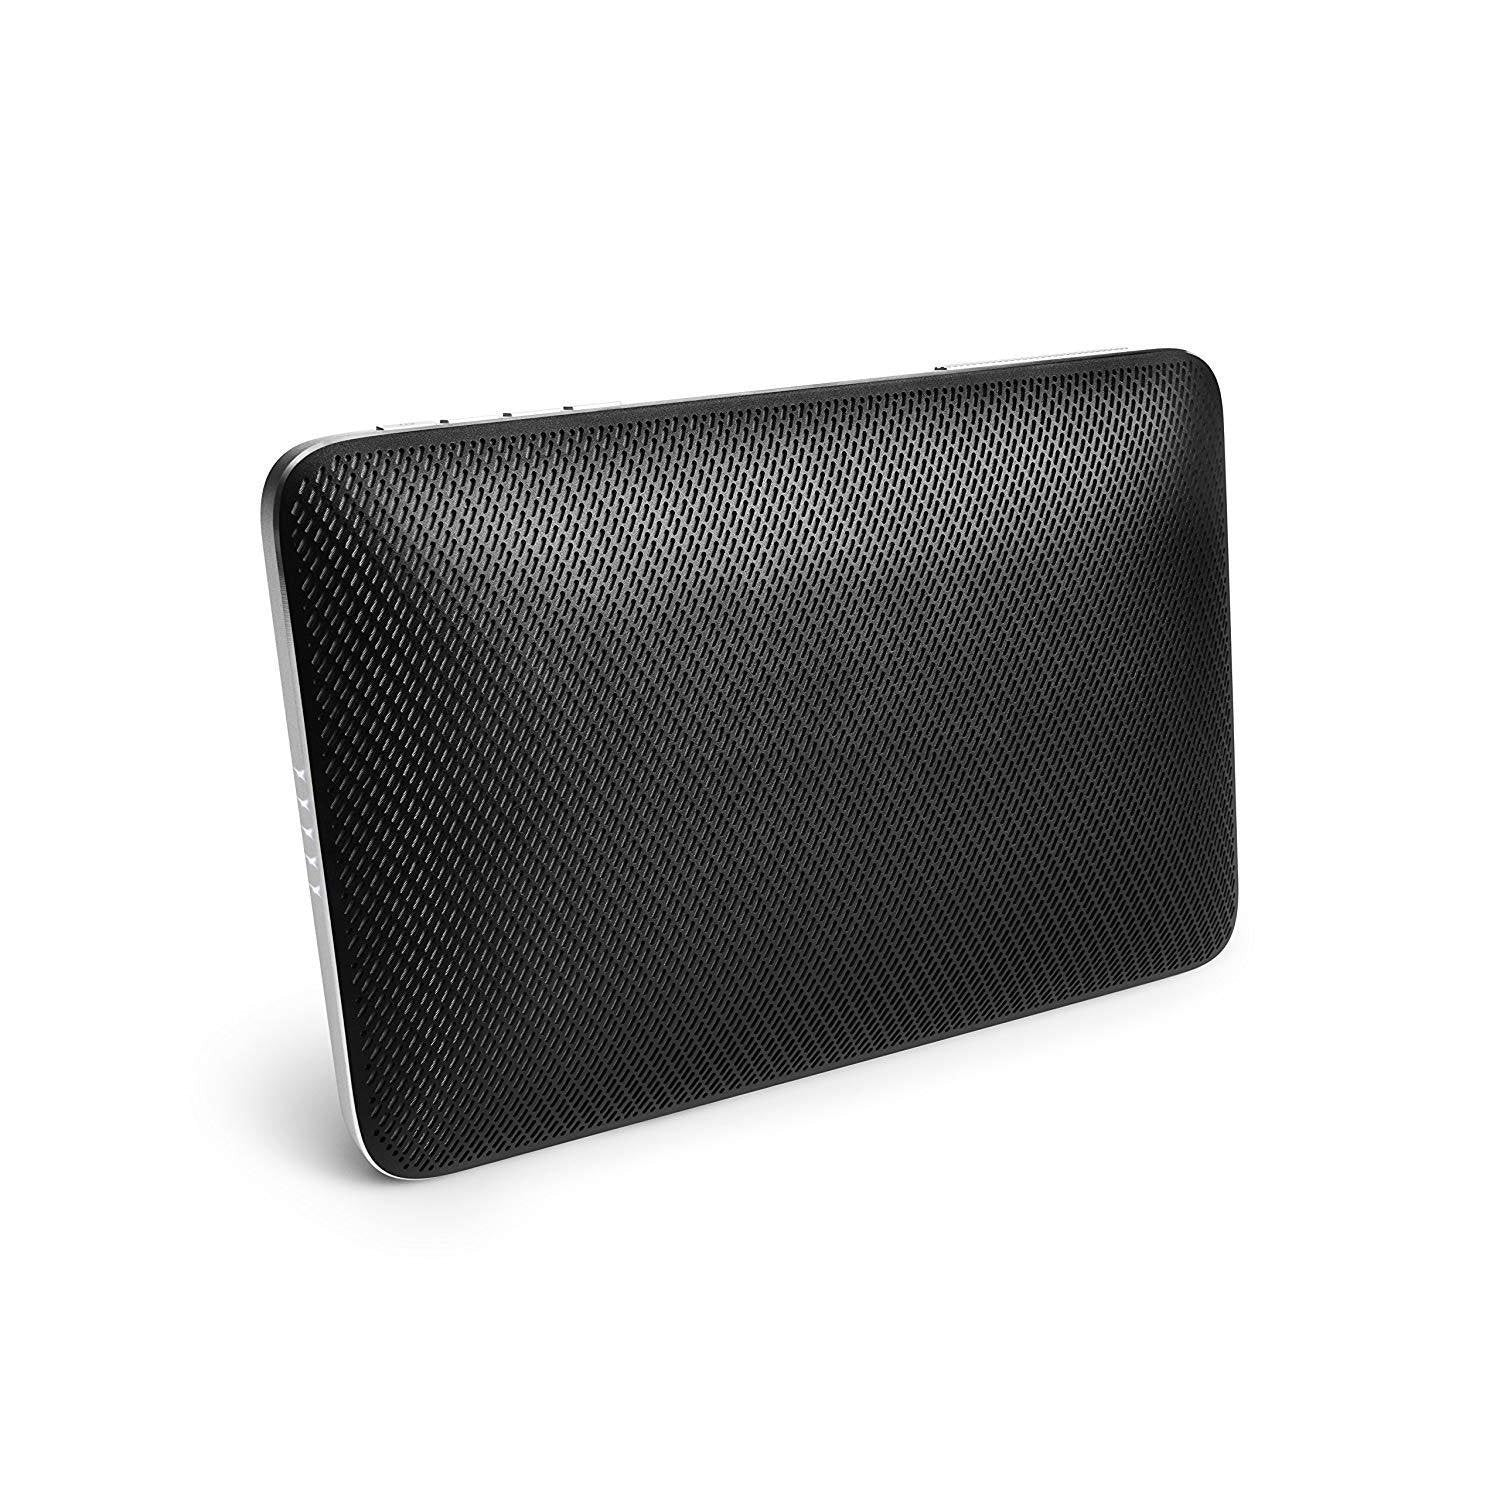 Black Wireless Bluetooth Stereo Speaker